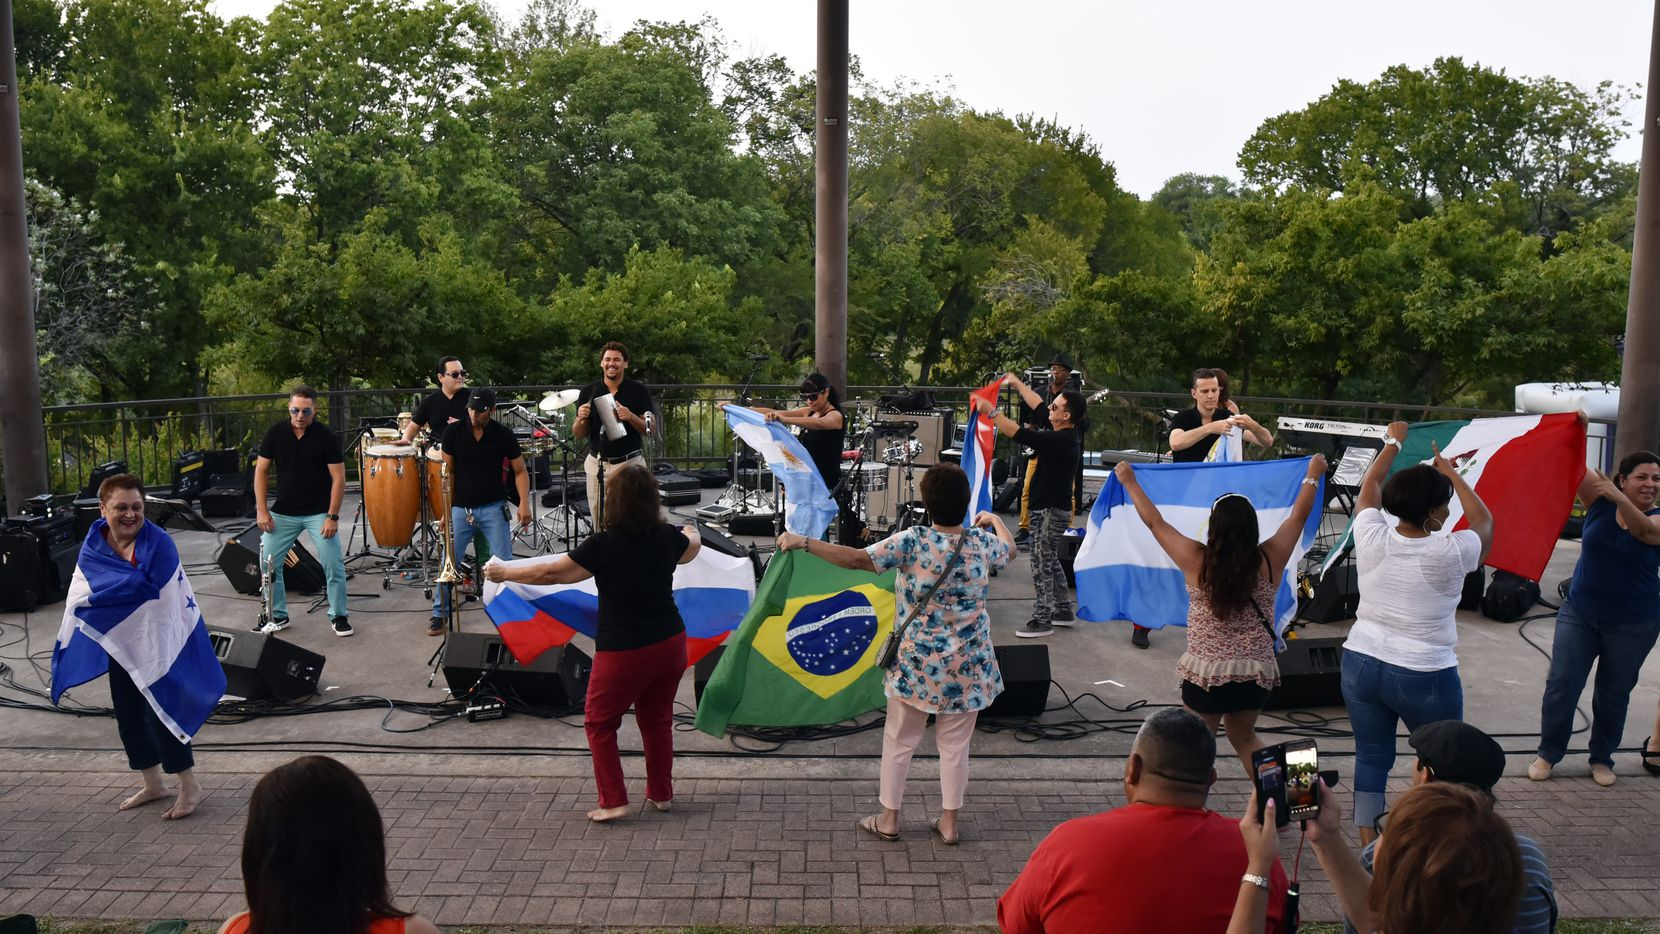 Salsa fans dance with a collection Latin flags during a performance by Havana NRG during the 2017 Latino Heritage Festival in DeSoto.